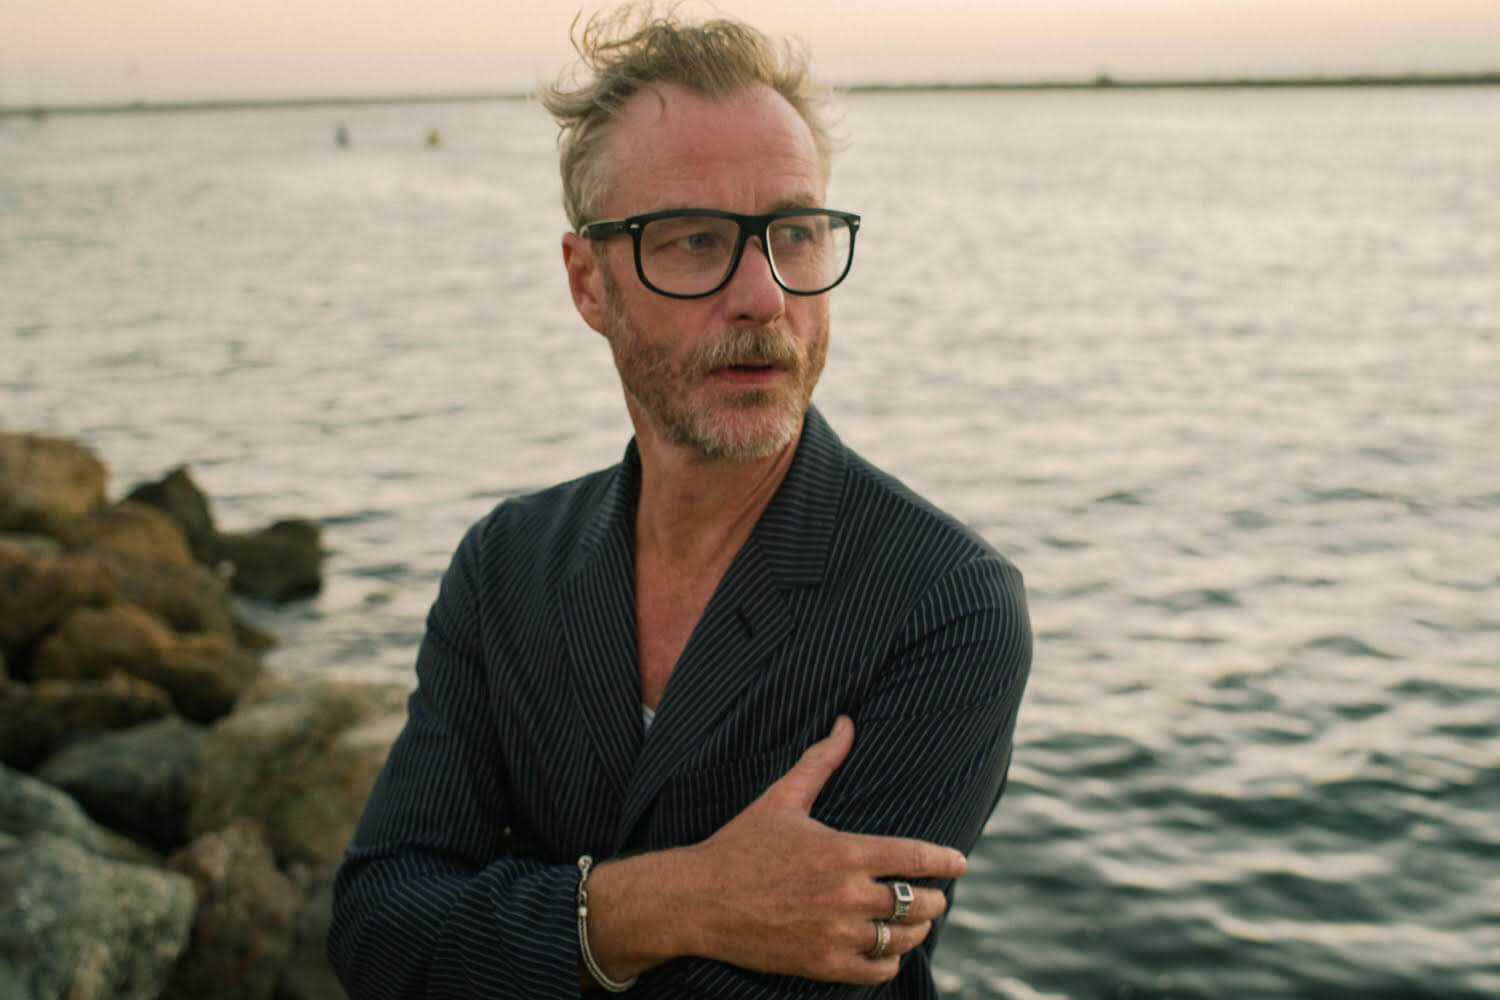 """Matt Berninger will be livestreaming on YouTube from his home, the Chris Sgroi -directed video for """"One More Second"""